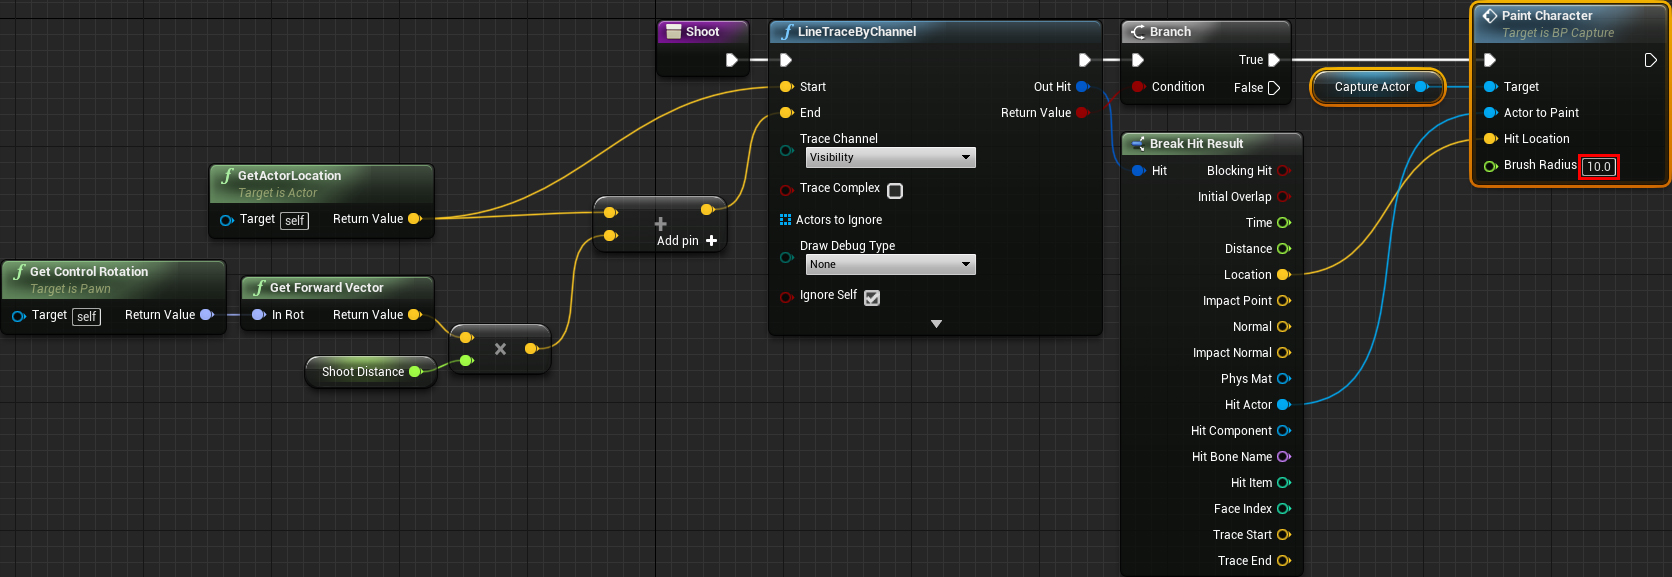 Dynamic Mesh Painting in Unreal Engine 4 | raywenderlich com